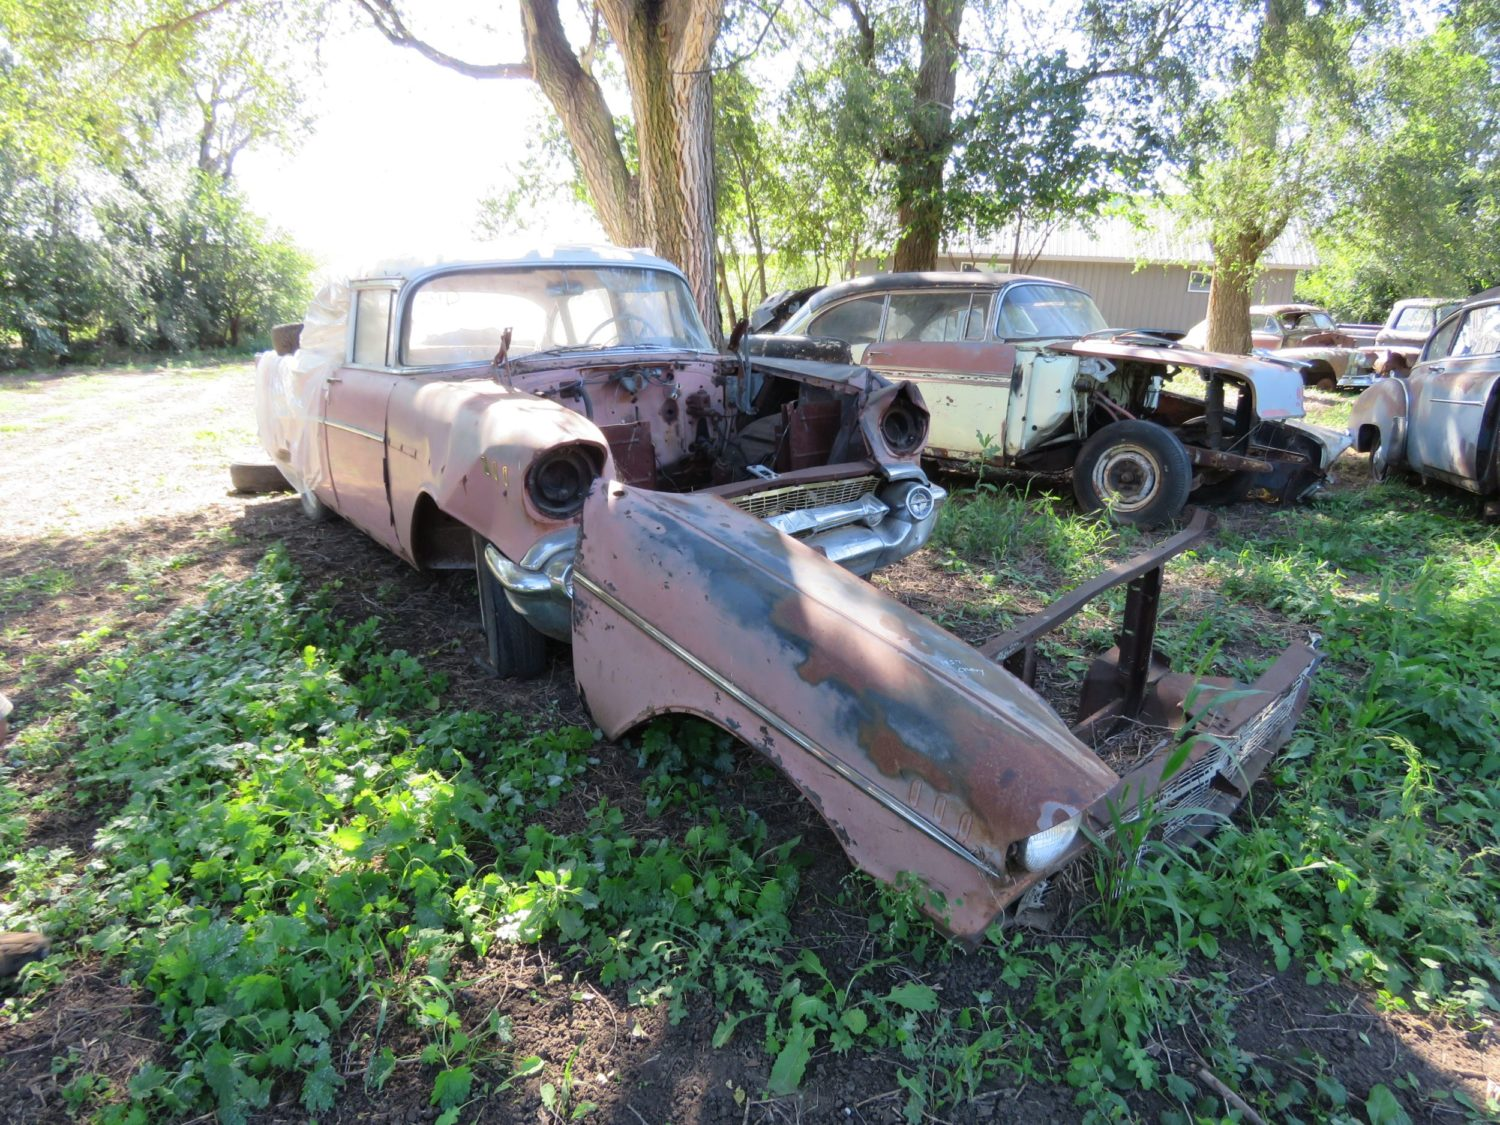 Collector Cars and Parts-Doug Wilson Collection - image 7